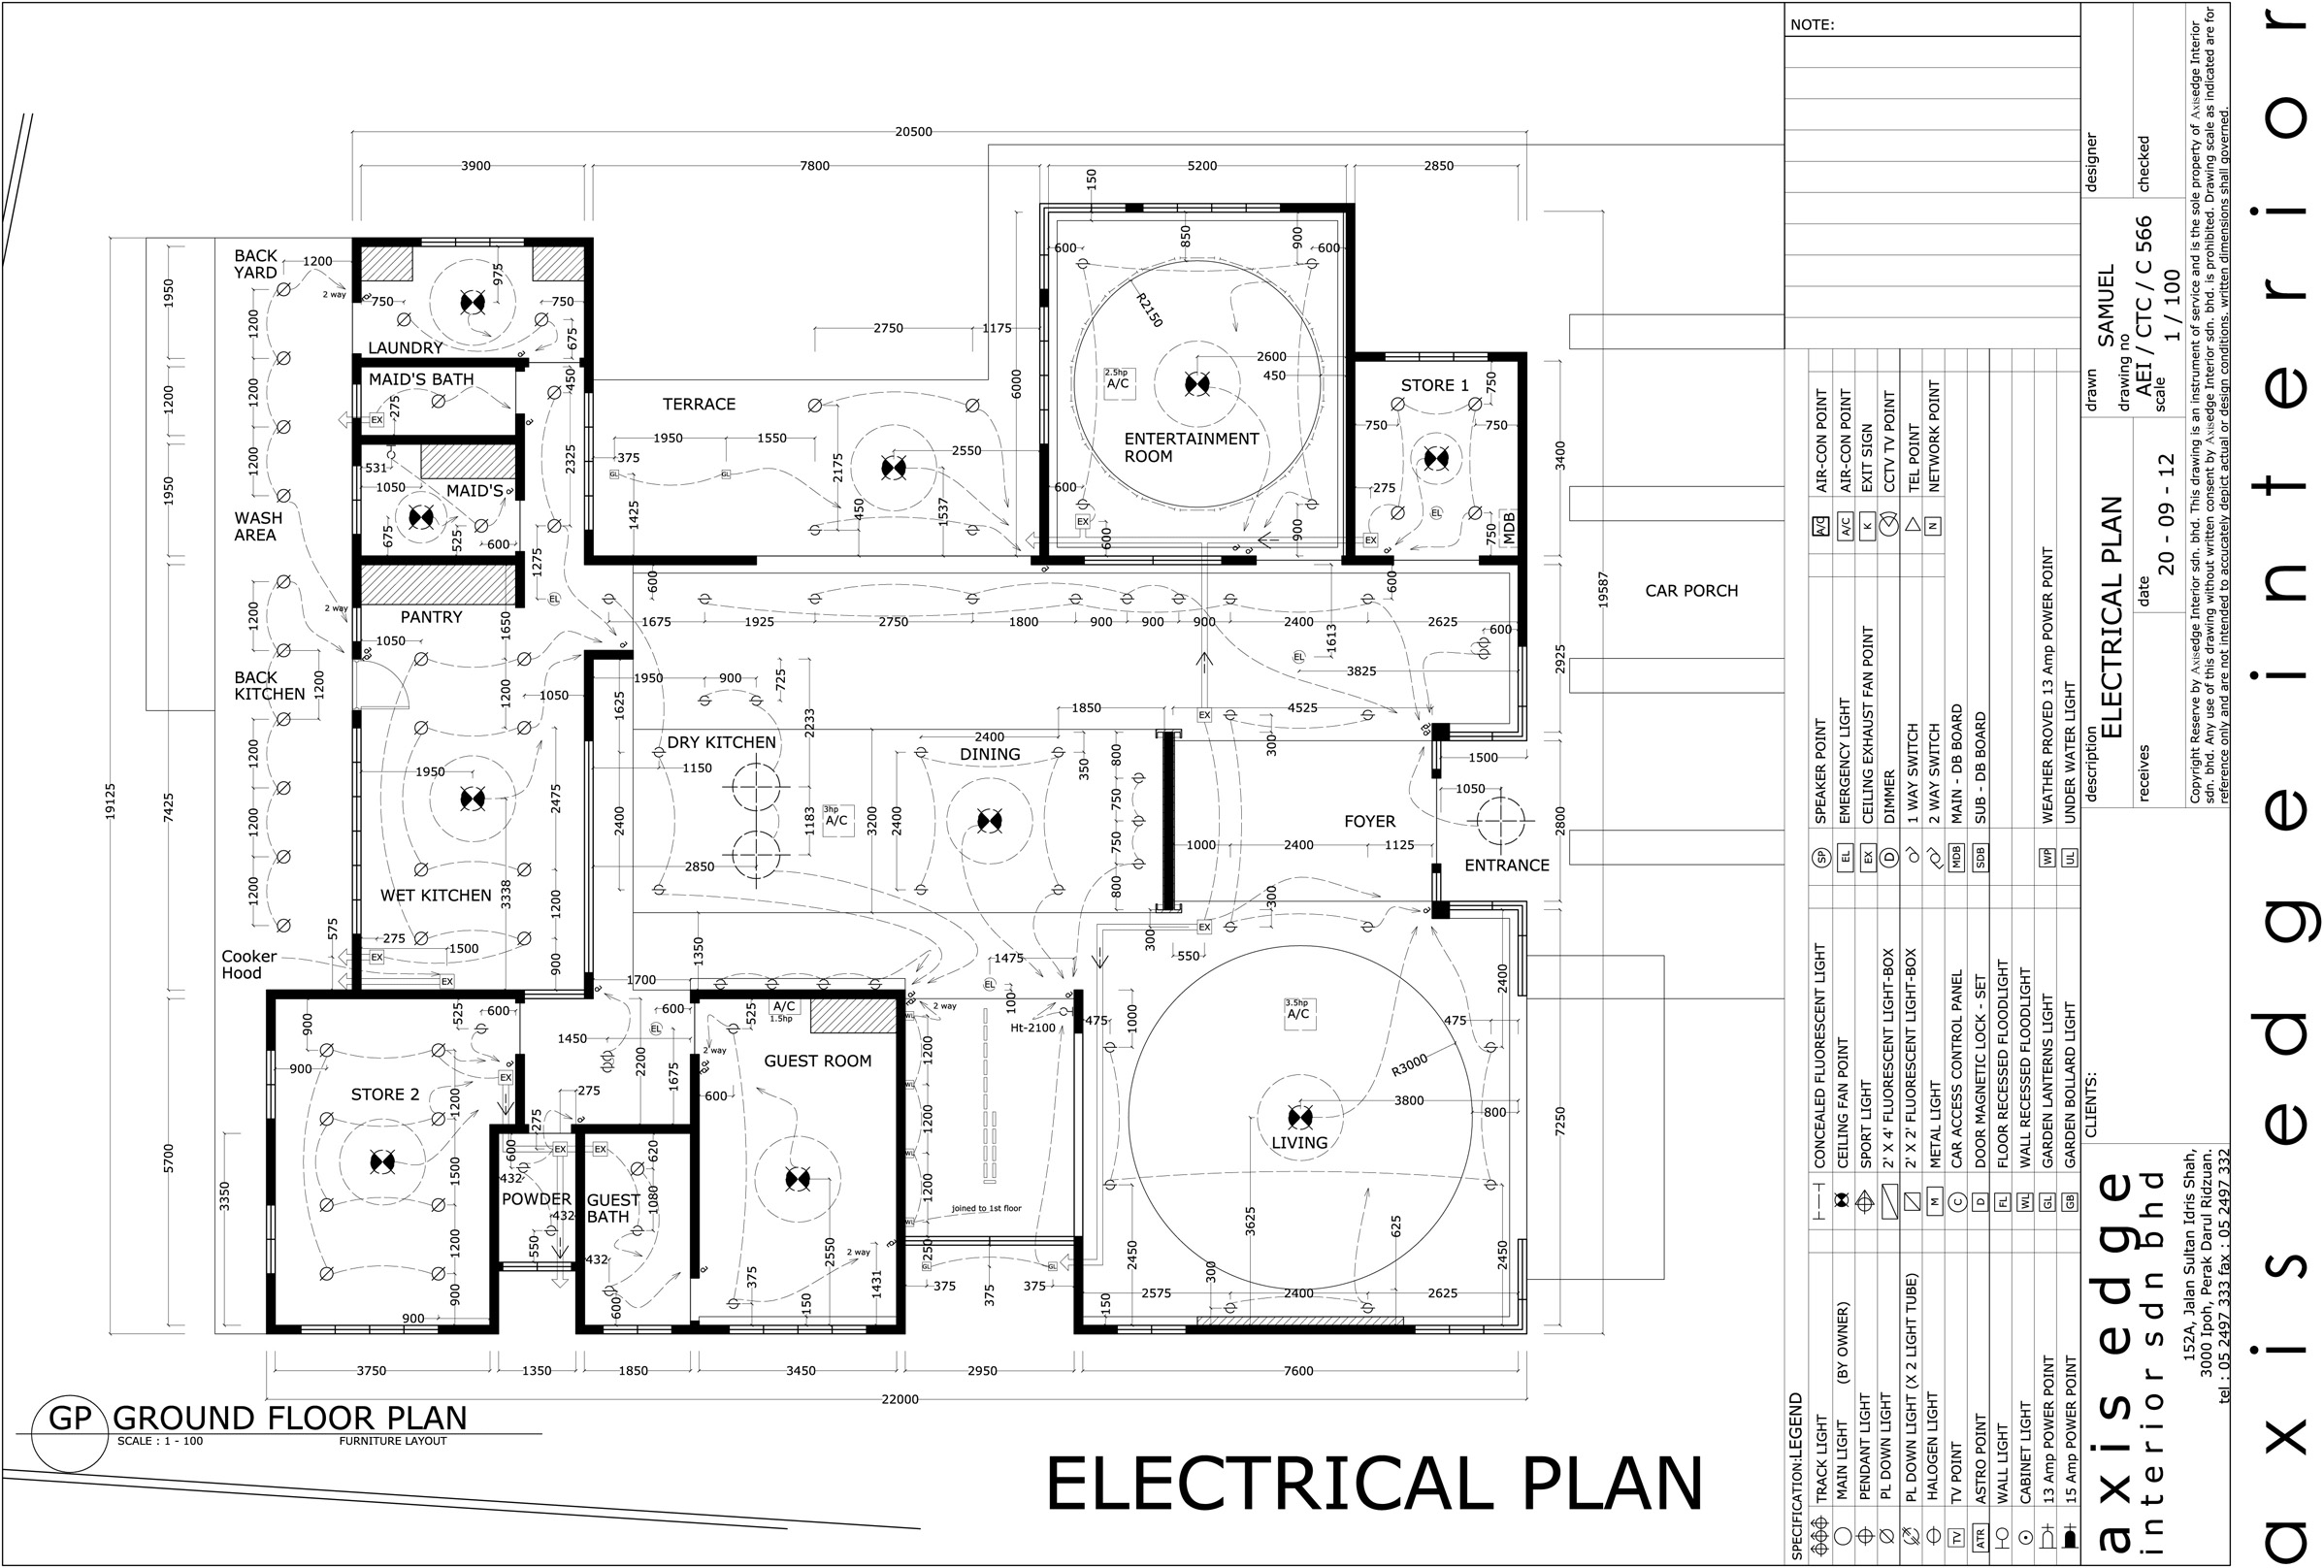 Electrical Plan Drawings Wiring Library Plans Autocad Design Drafting Cs Pictures Of Checklist